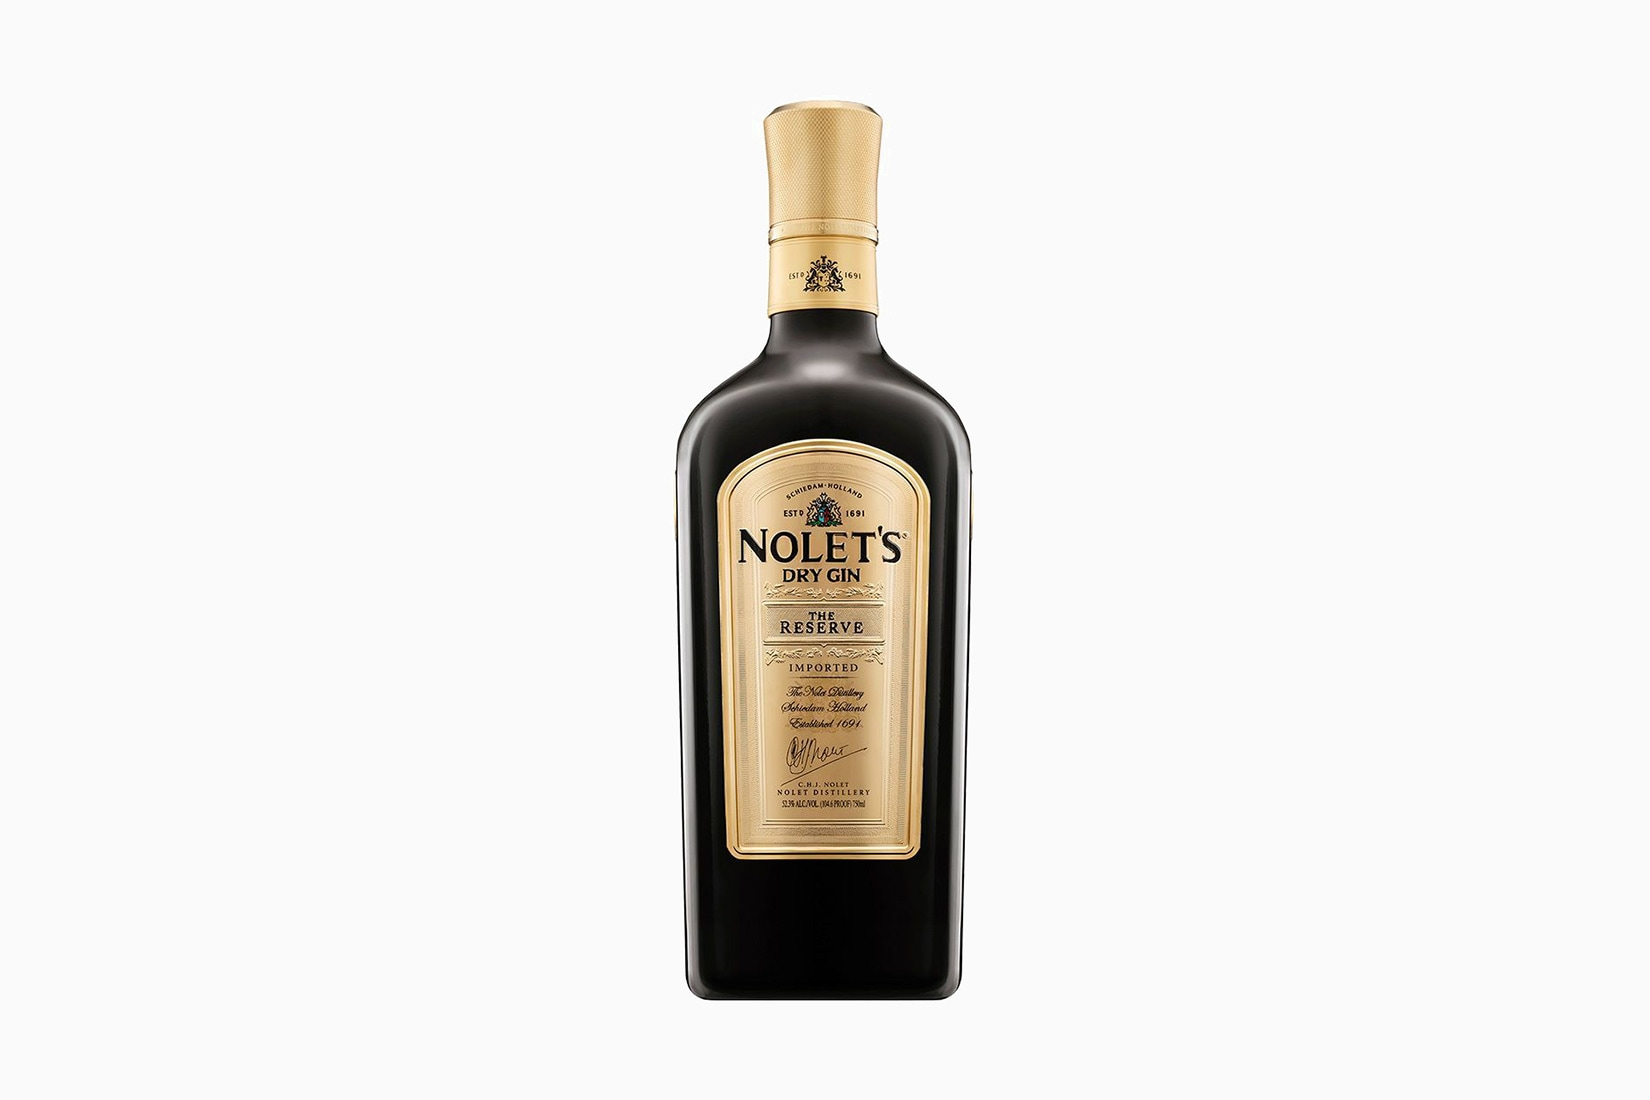 best gin brands most expensive nolet's - Luxe Digital